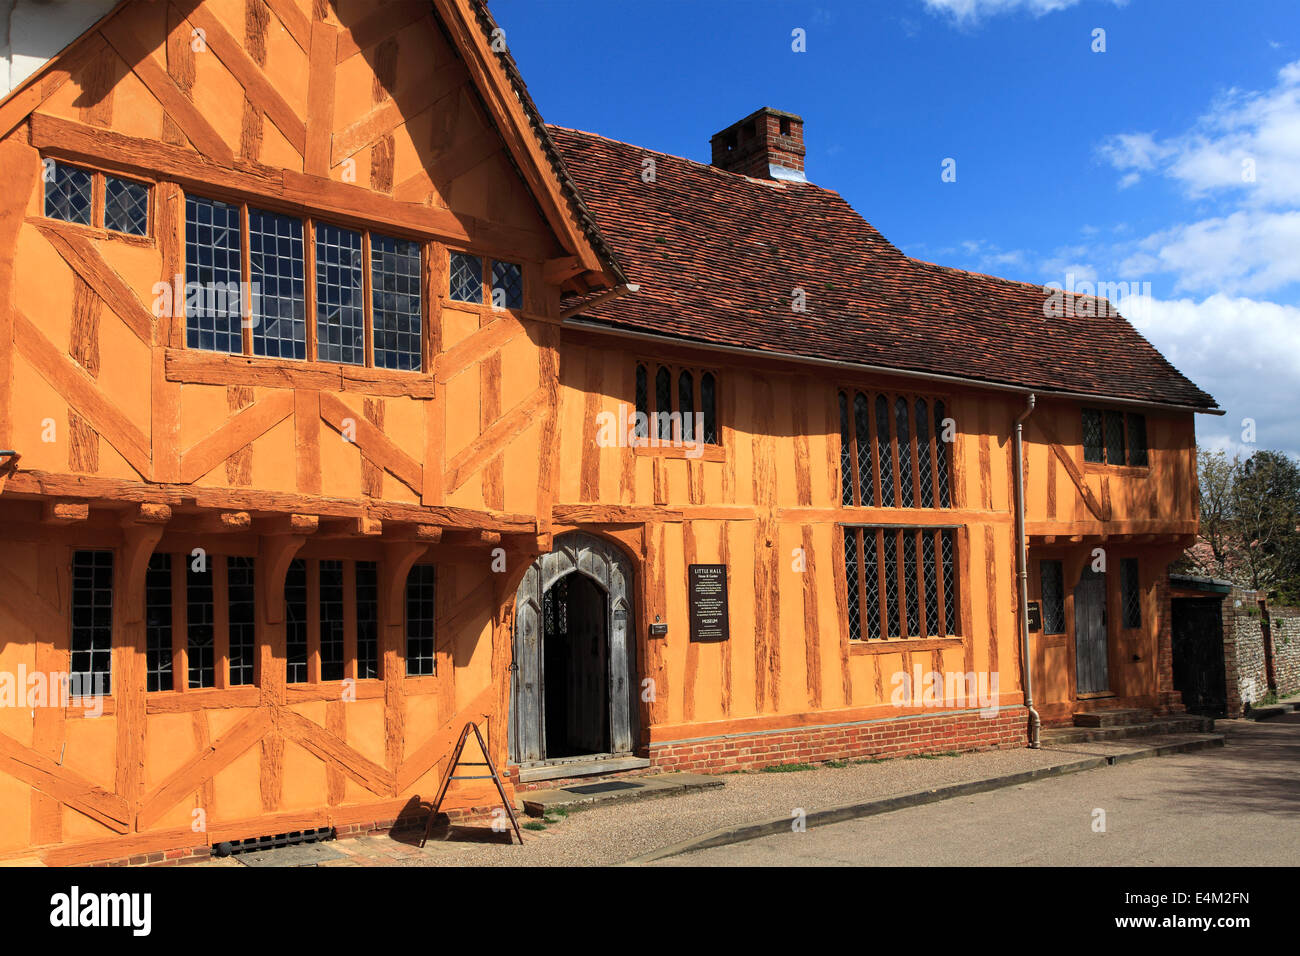 Little Hall Market square, Lavenham village, Suffolk County, England, Britain. - Stock Image